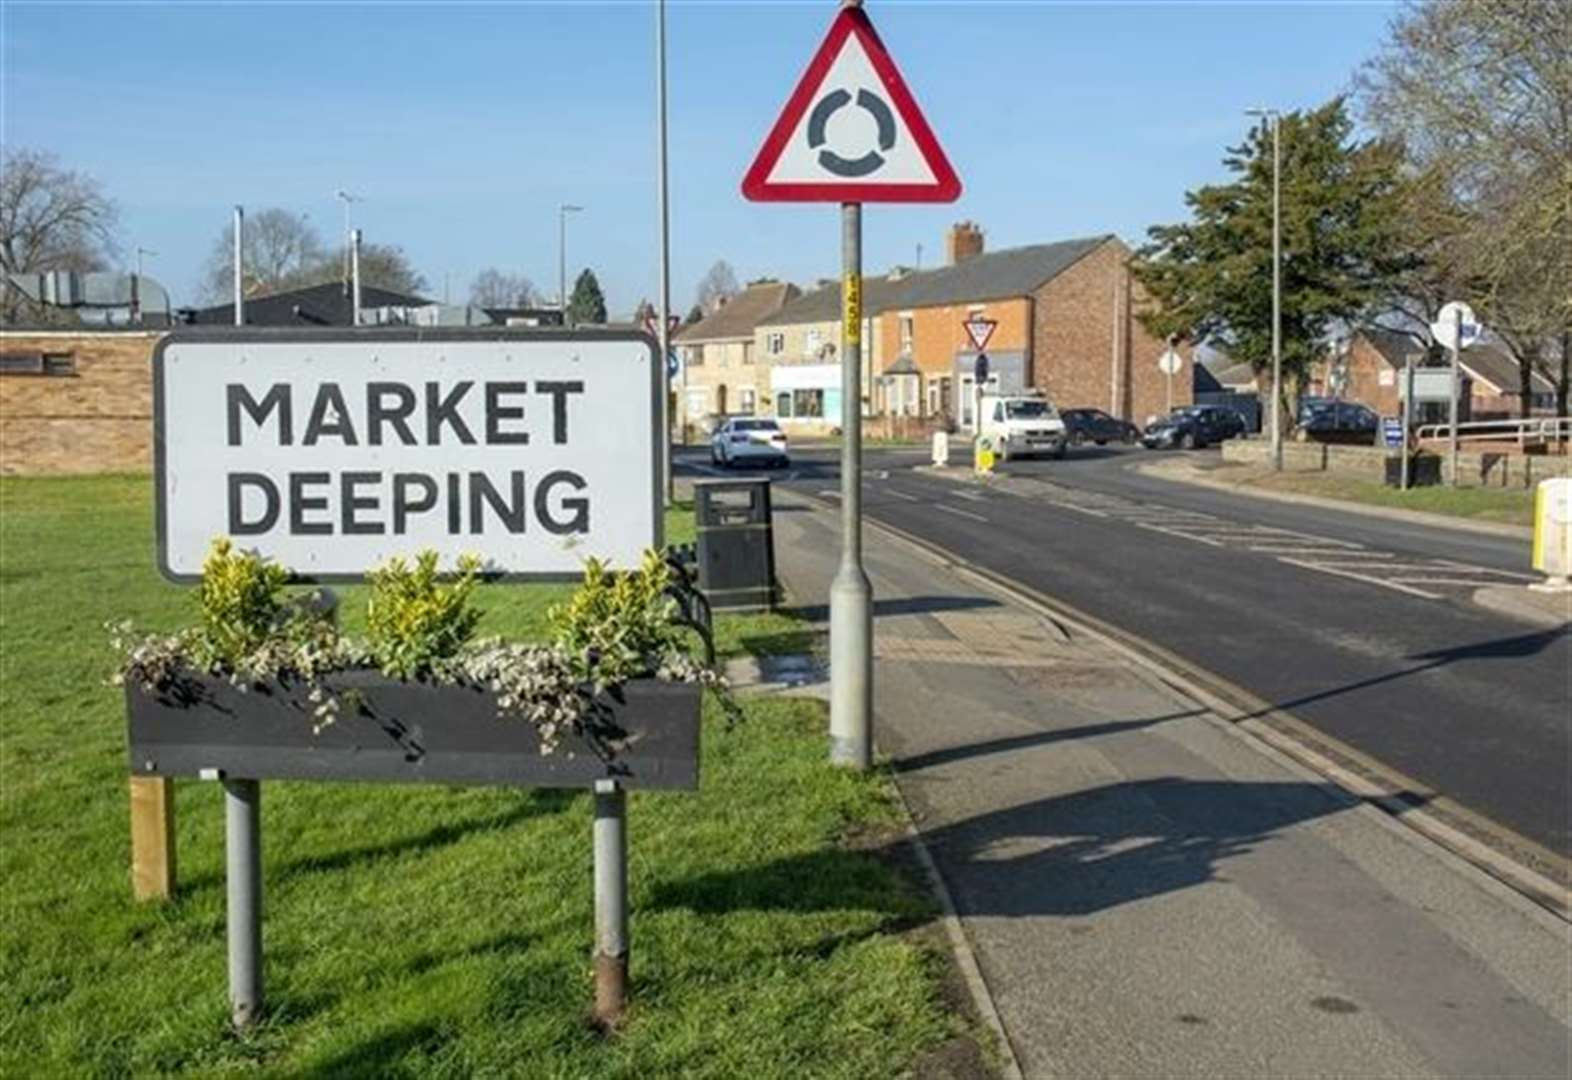 14 jobs promise in Market Deeping Spitfire plans